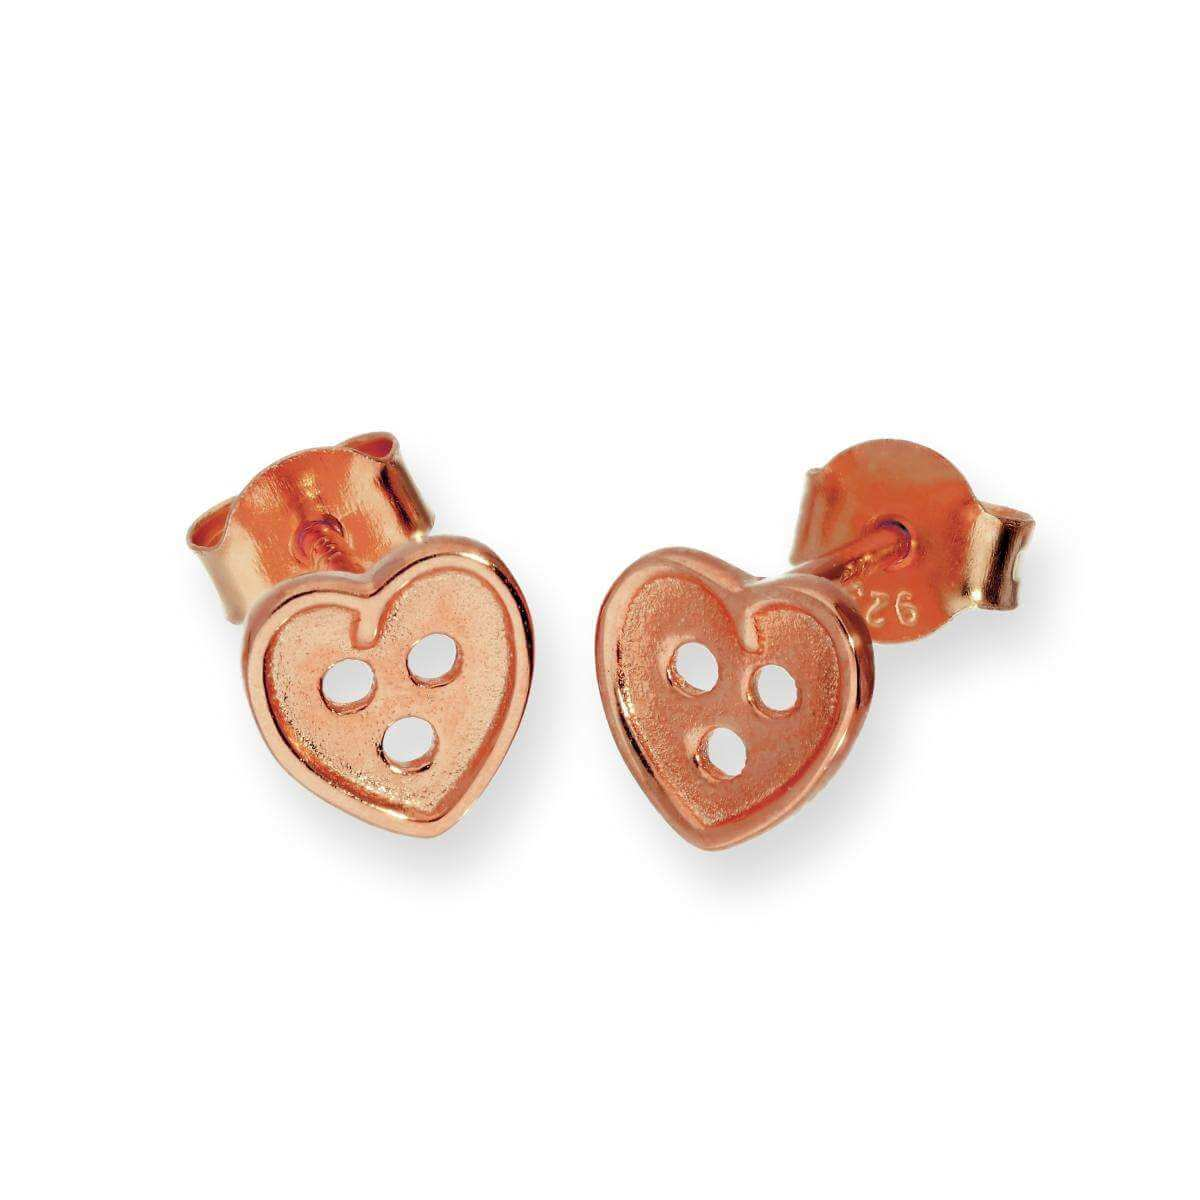 Rose Gold Plated Sterling Silver Heart Shaped Button Stud Earrings